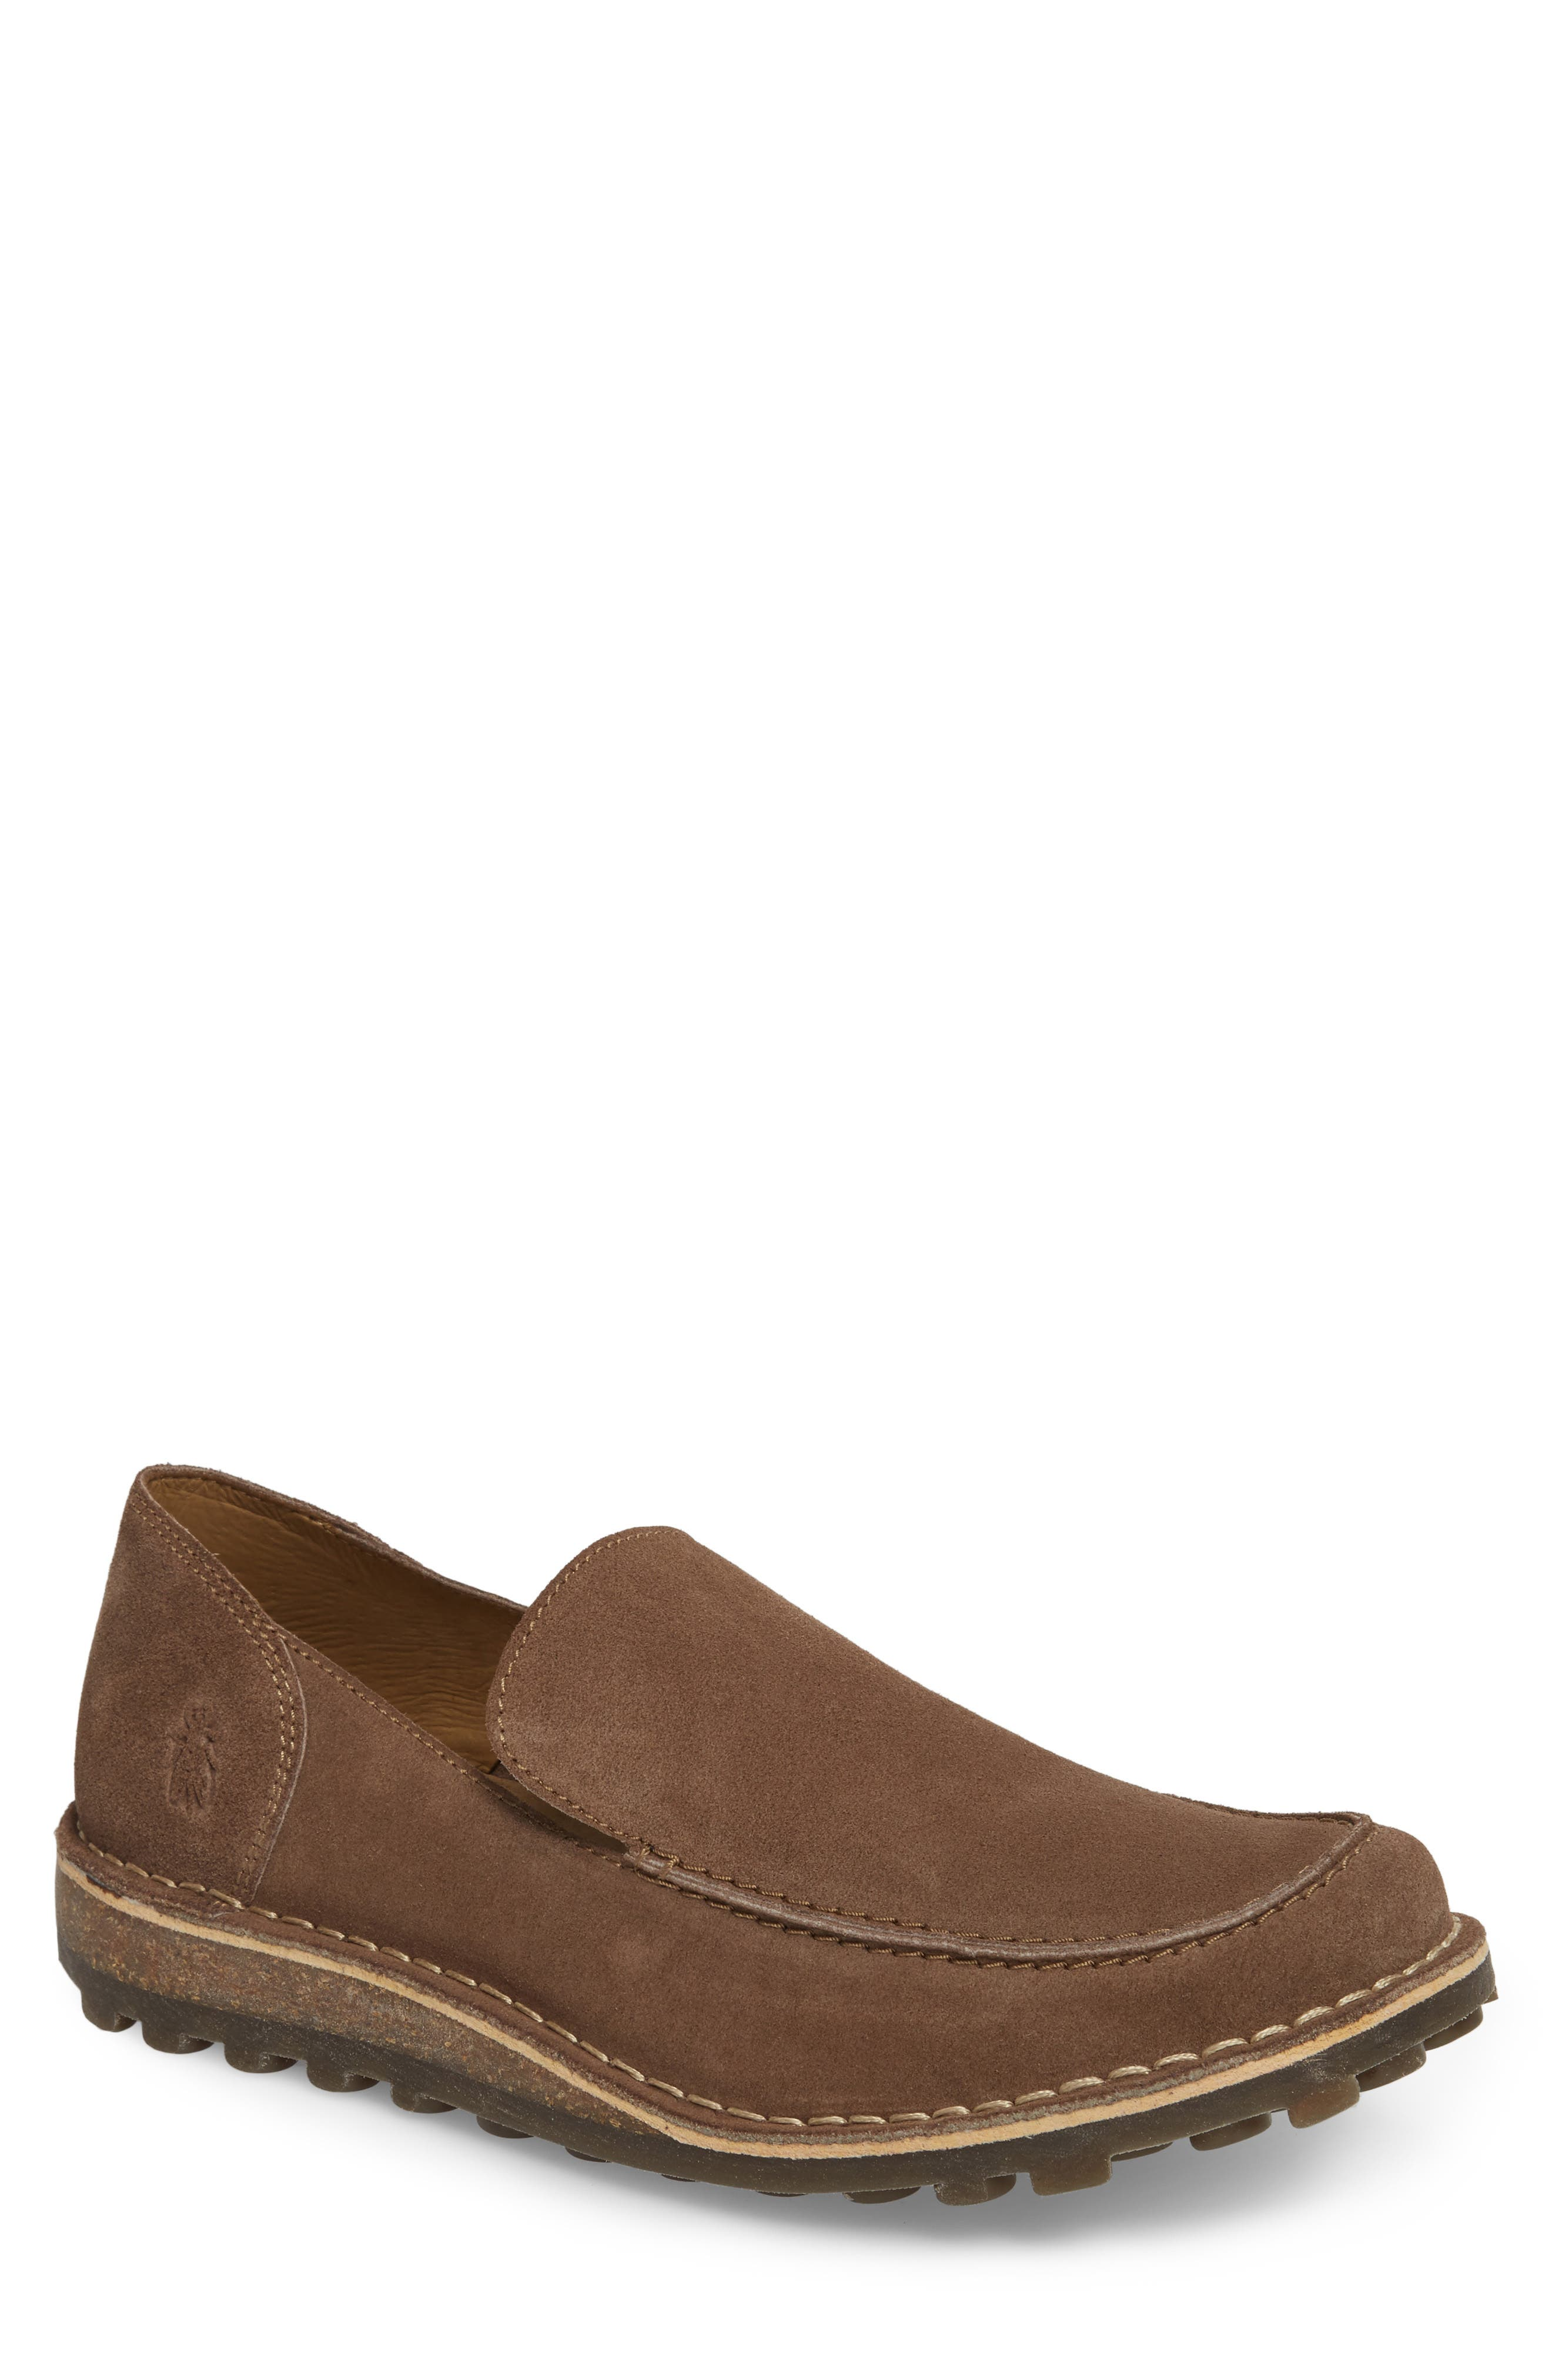 Meve Moc Toe Loafer,                             Main thumbnail 1, color,                             Taupe Suede